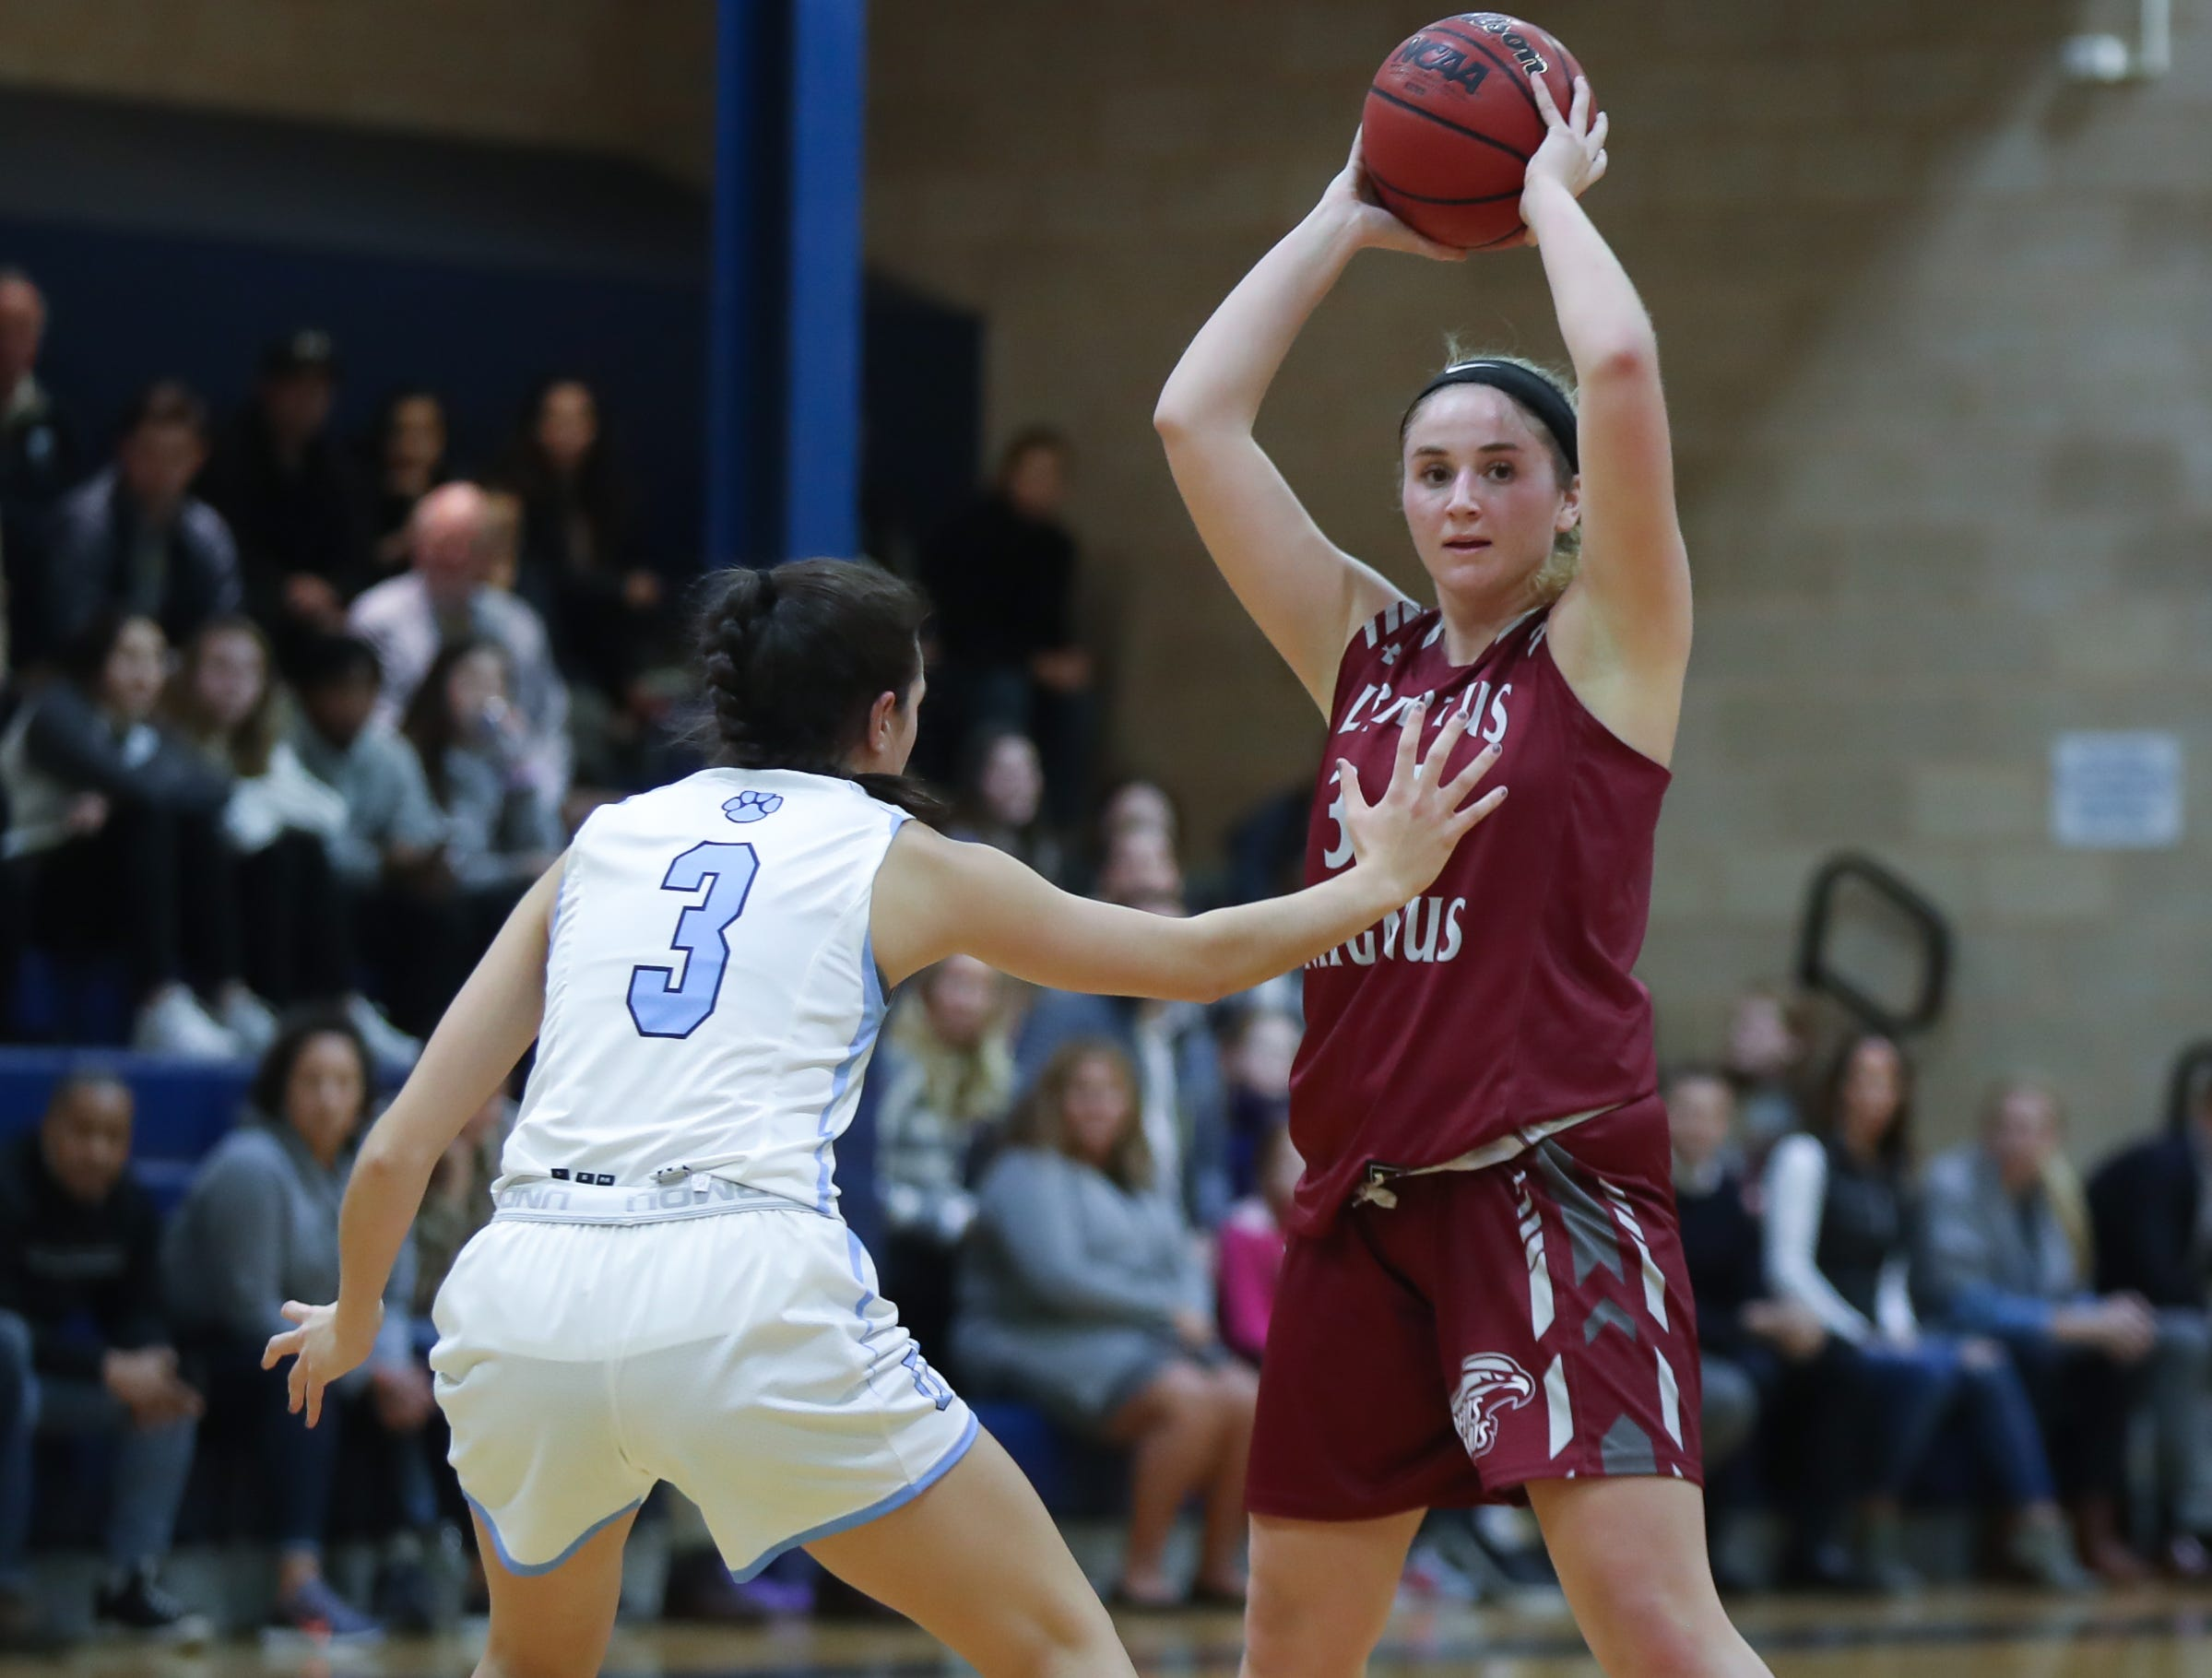 Albertus' Chloe Cavallo (34) looks for a play as Ursuline's Riley DelPriorie (3) defends during girls varsity basketball action at The Ursuline School in New Rochelle on Wednesday, January 9, 2019.  Ursuline defeated Albertus 68-48.